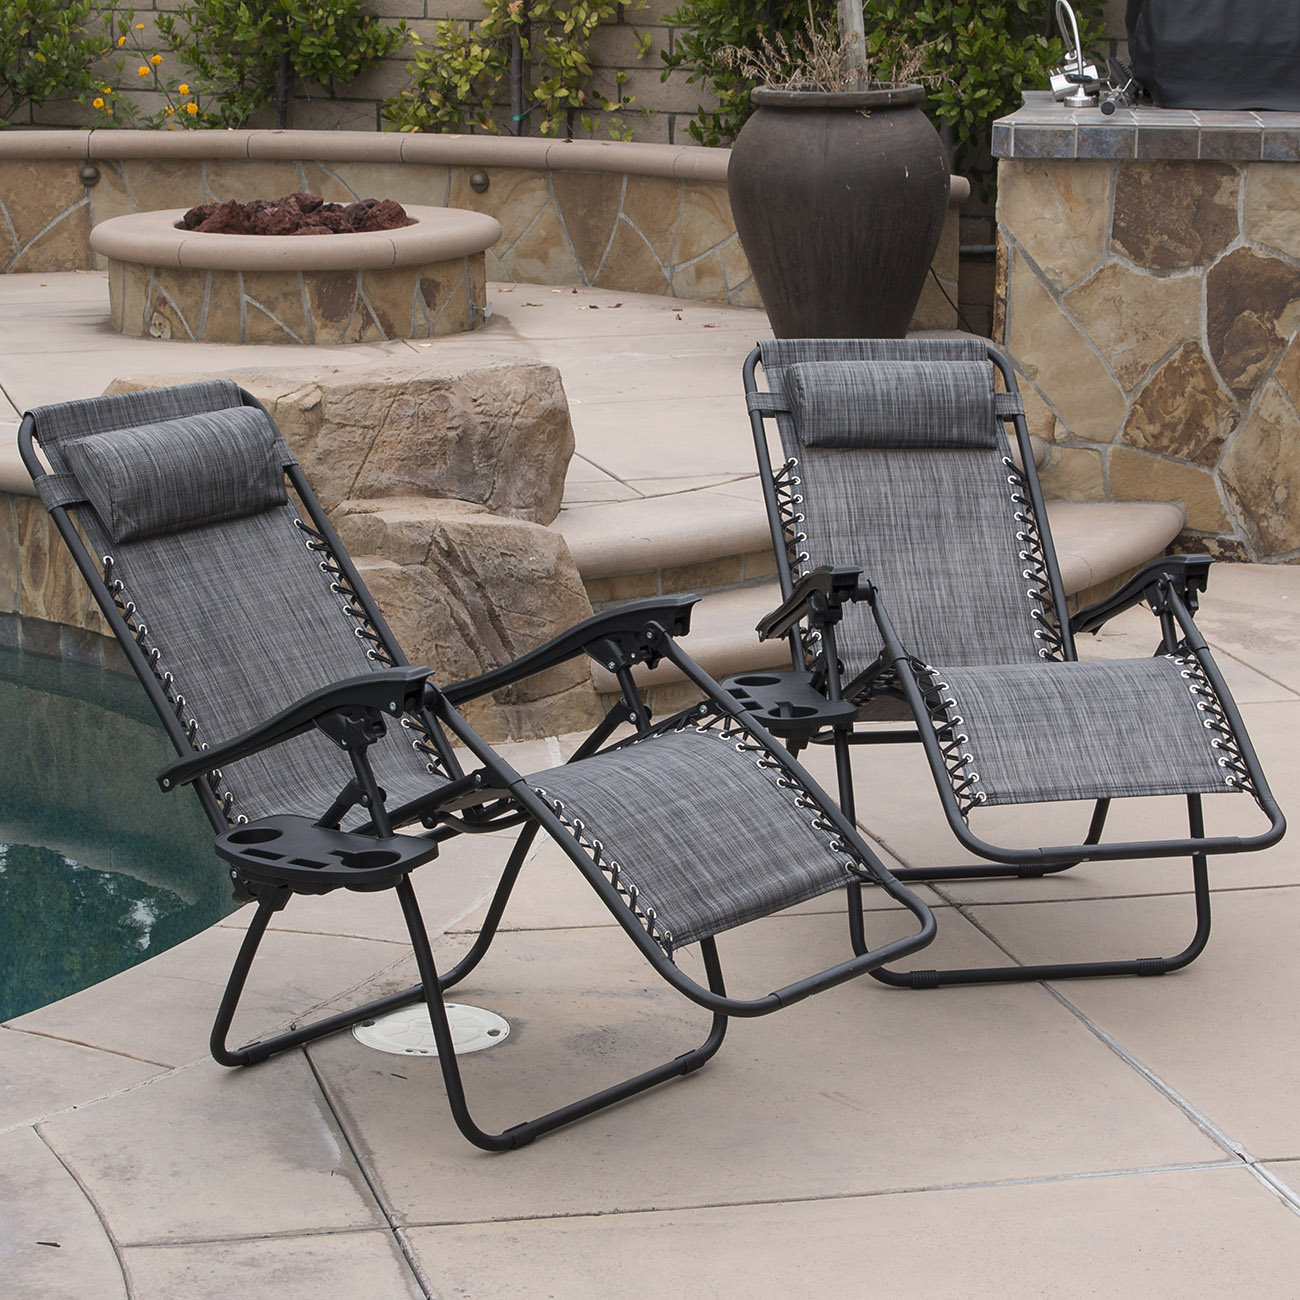 2 Lounge Chair Outdoor Zero Gravity Beach Patio Pool Yard Folding Recliner Gray & 2 Lounge Chair Outdoor Zero Gravity Beach Patio Pool Yard Folding ... islam-shia.org